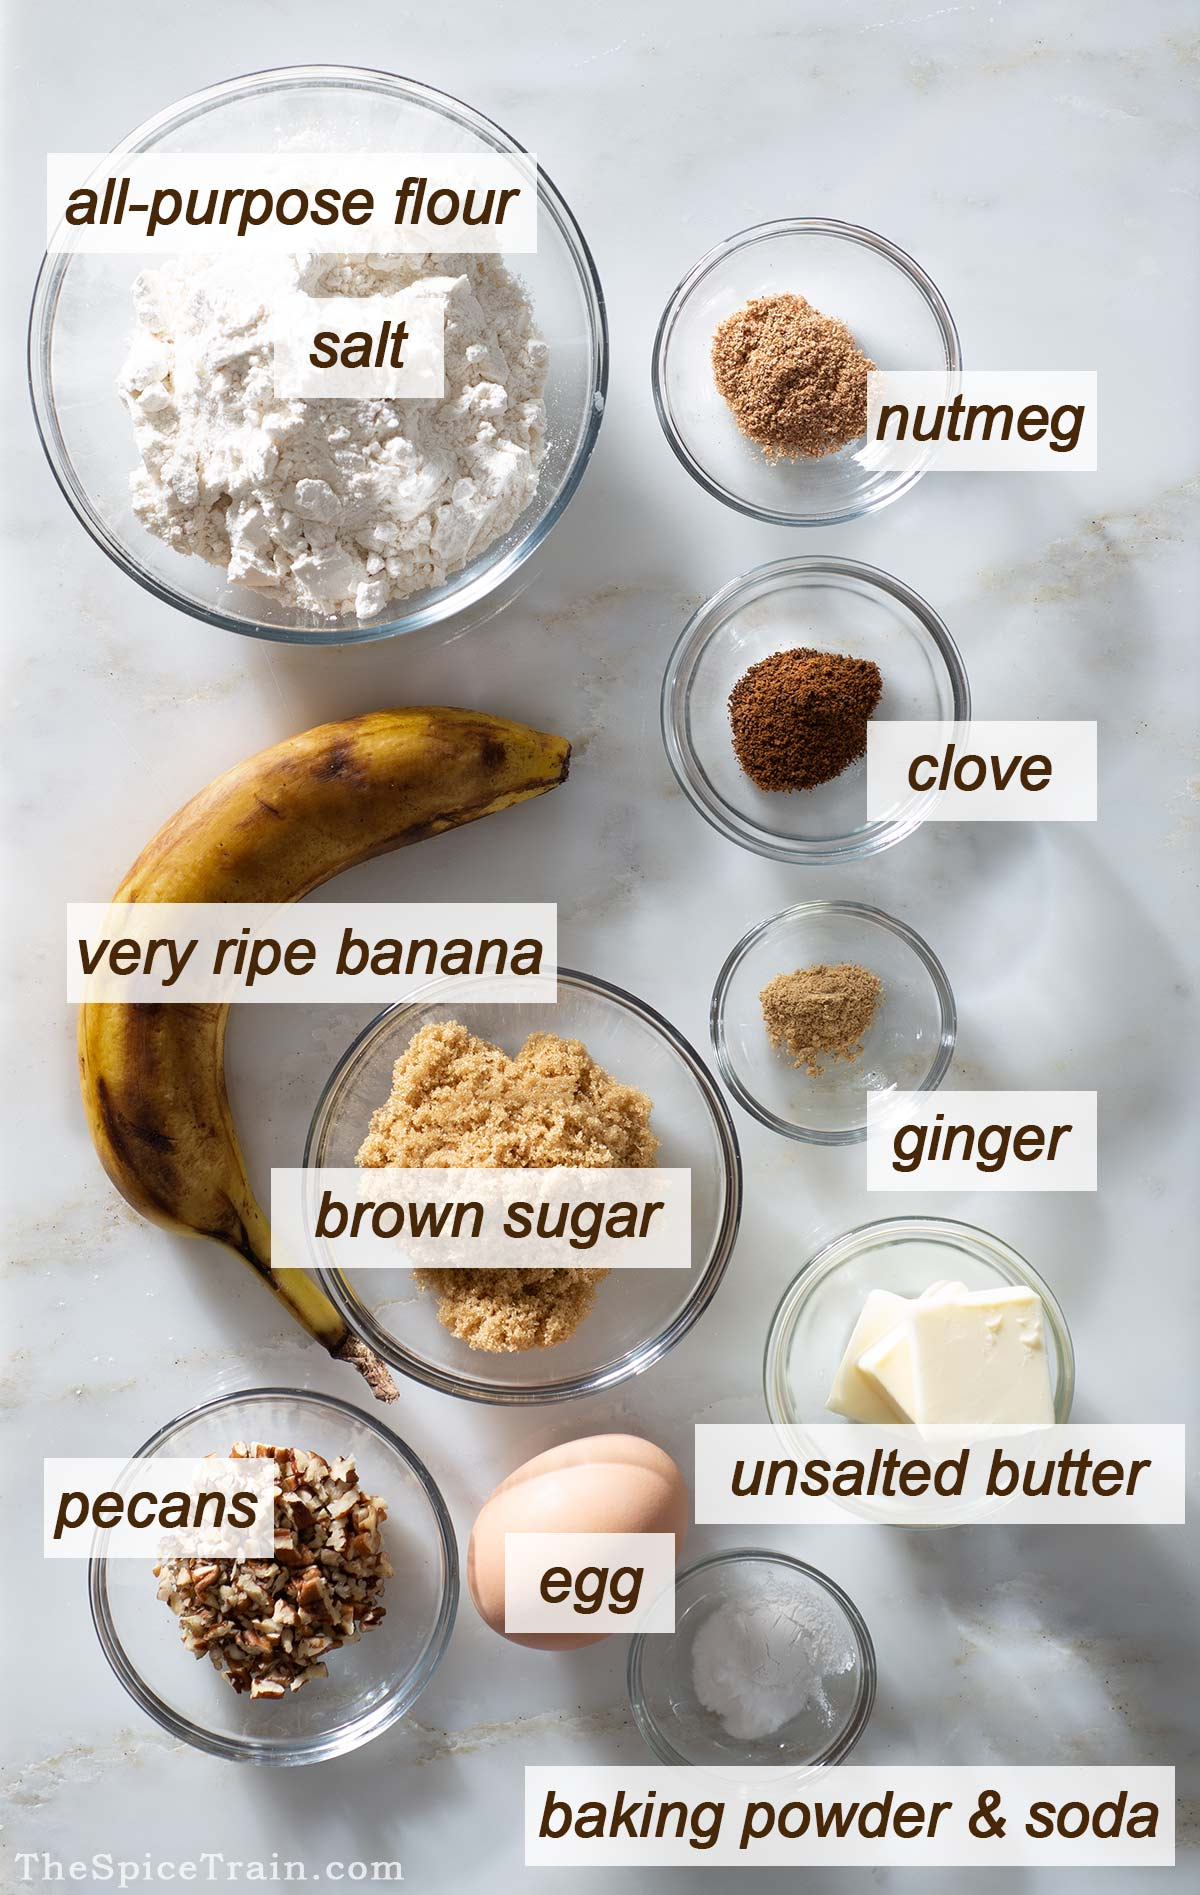 All ingredients needed to make banana donuts.